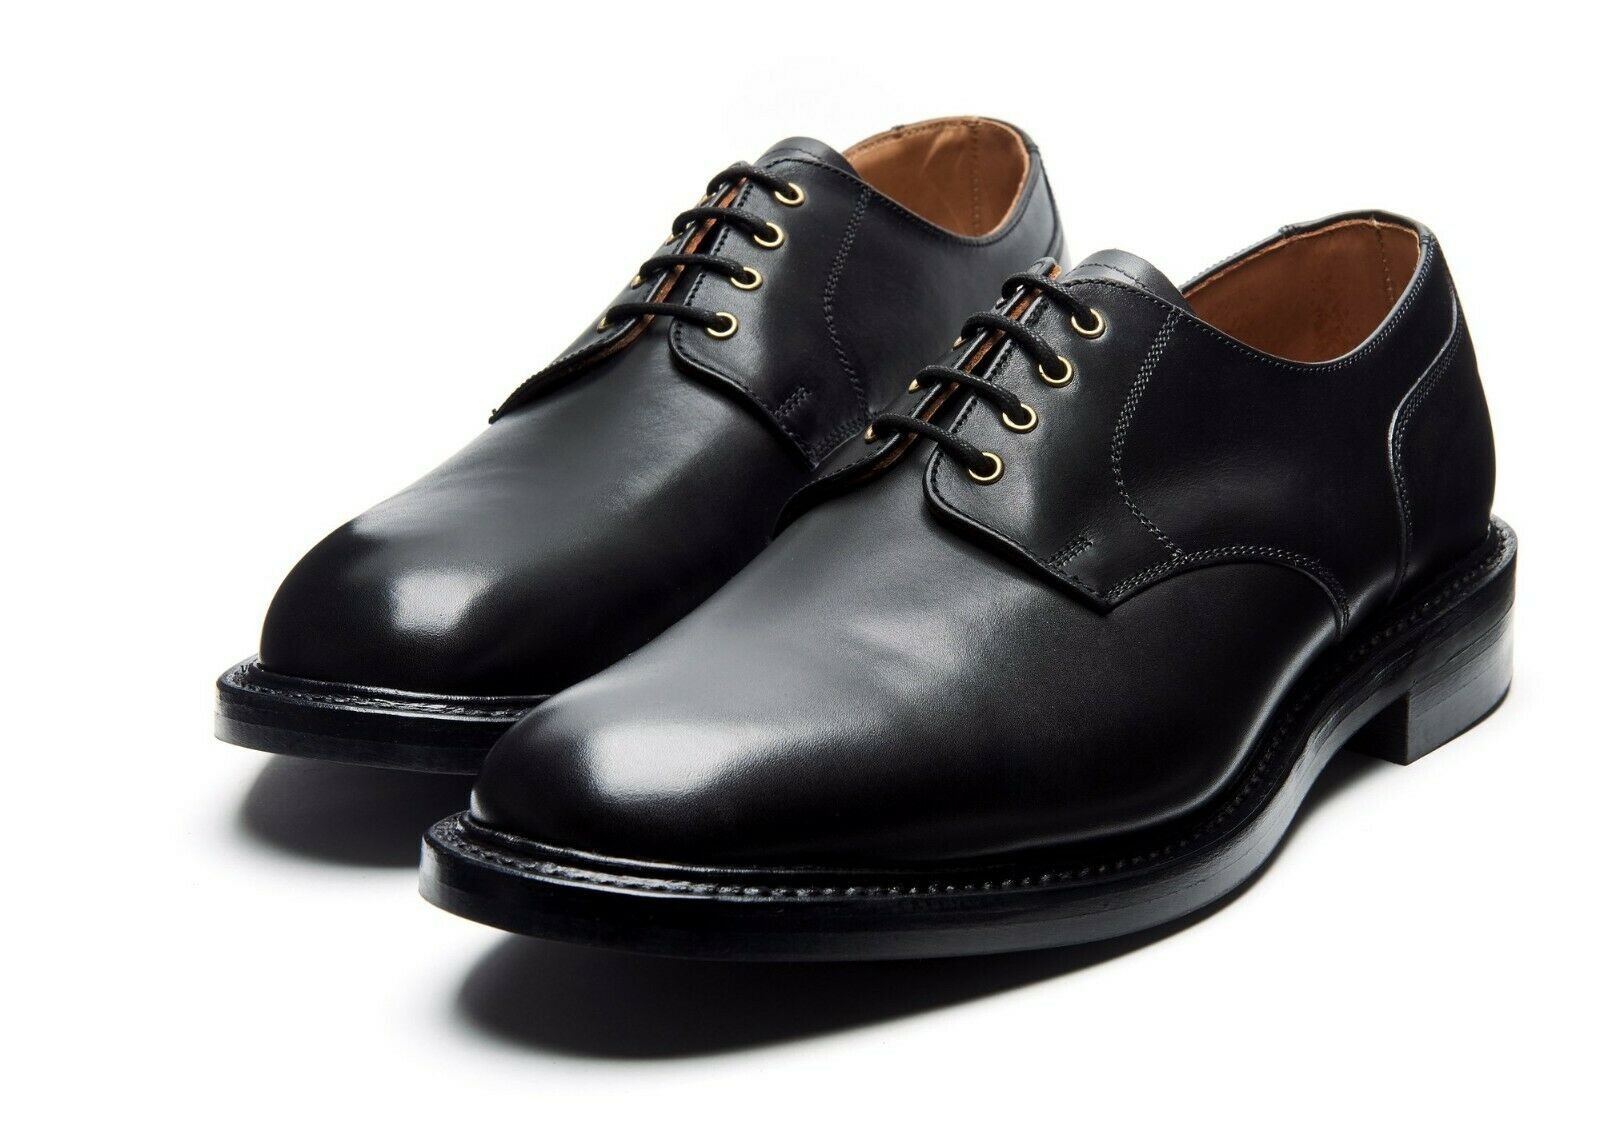 Solovair NPS Heritage BLAIR Black 4 Eyelet Gibson Shoe Leather Sole Made In England